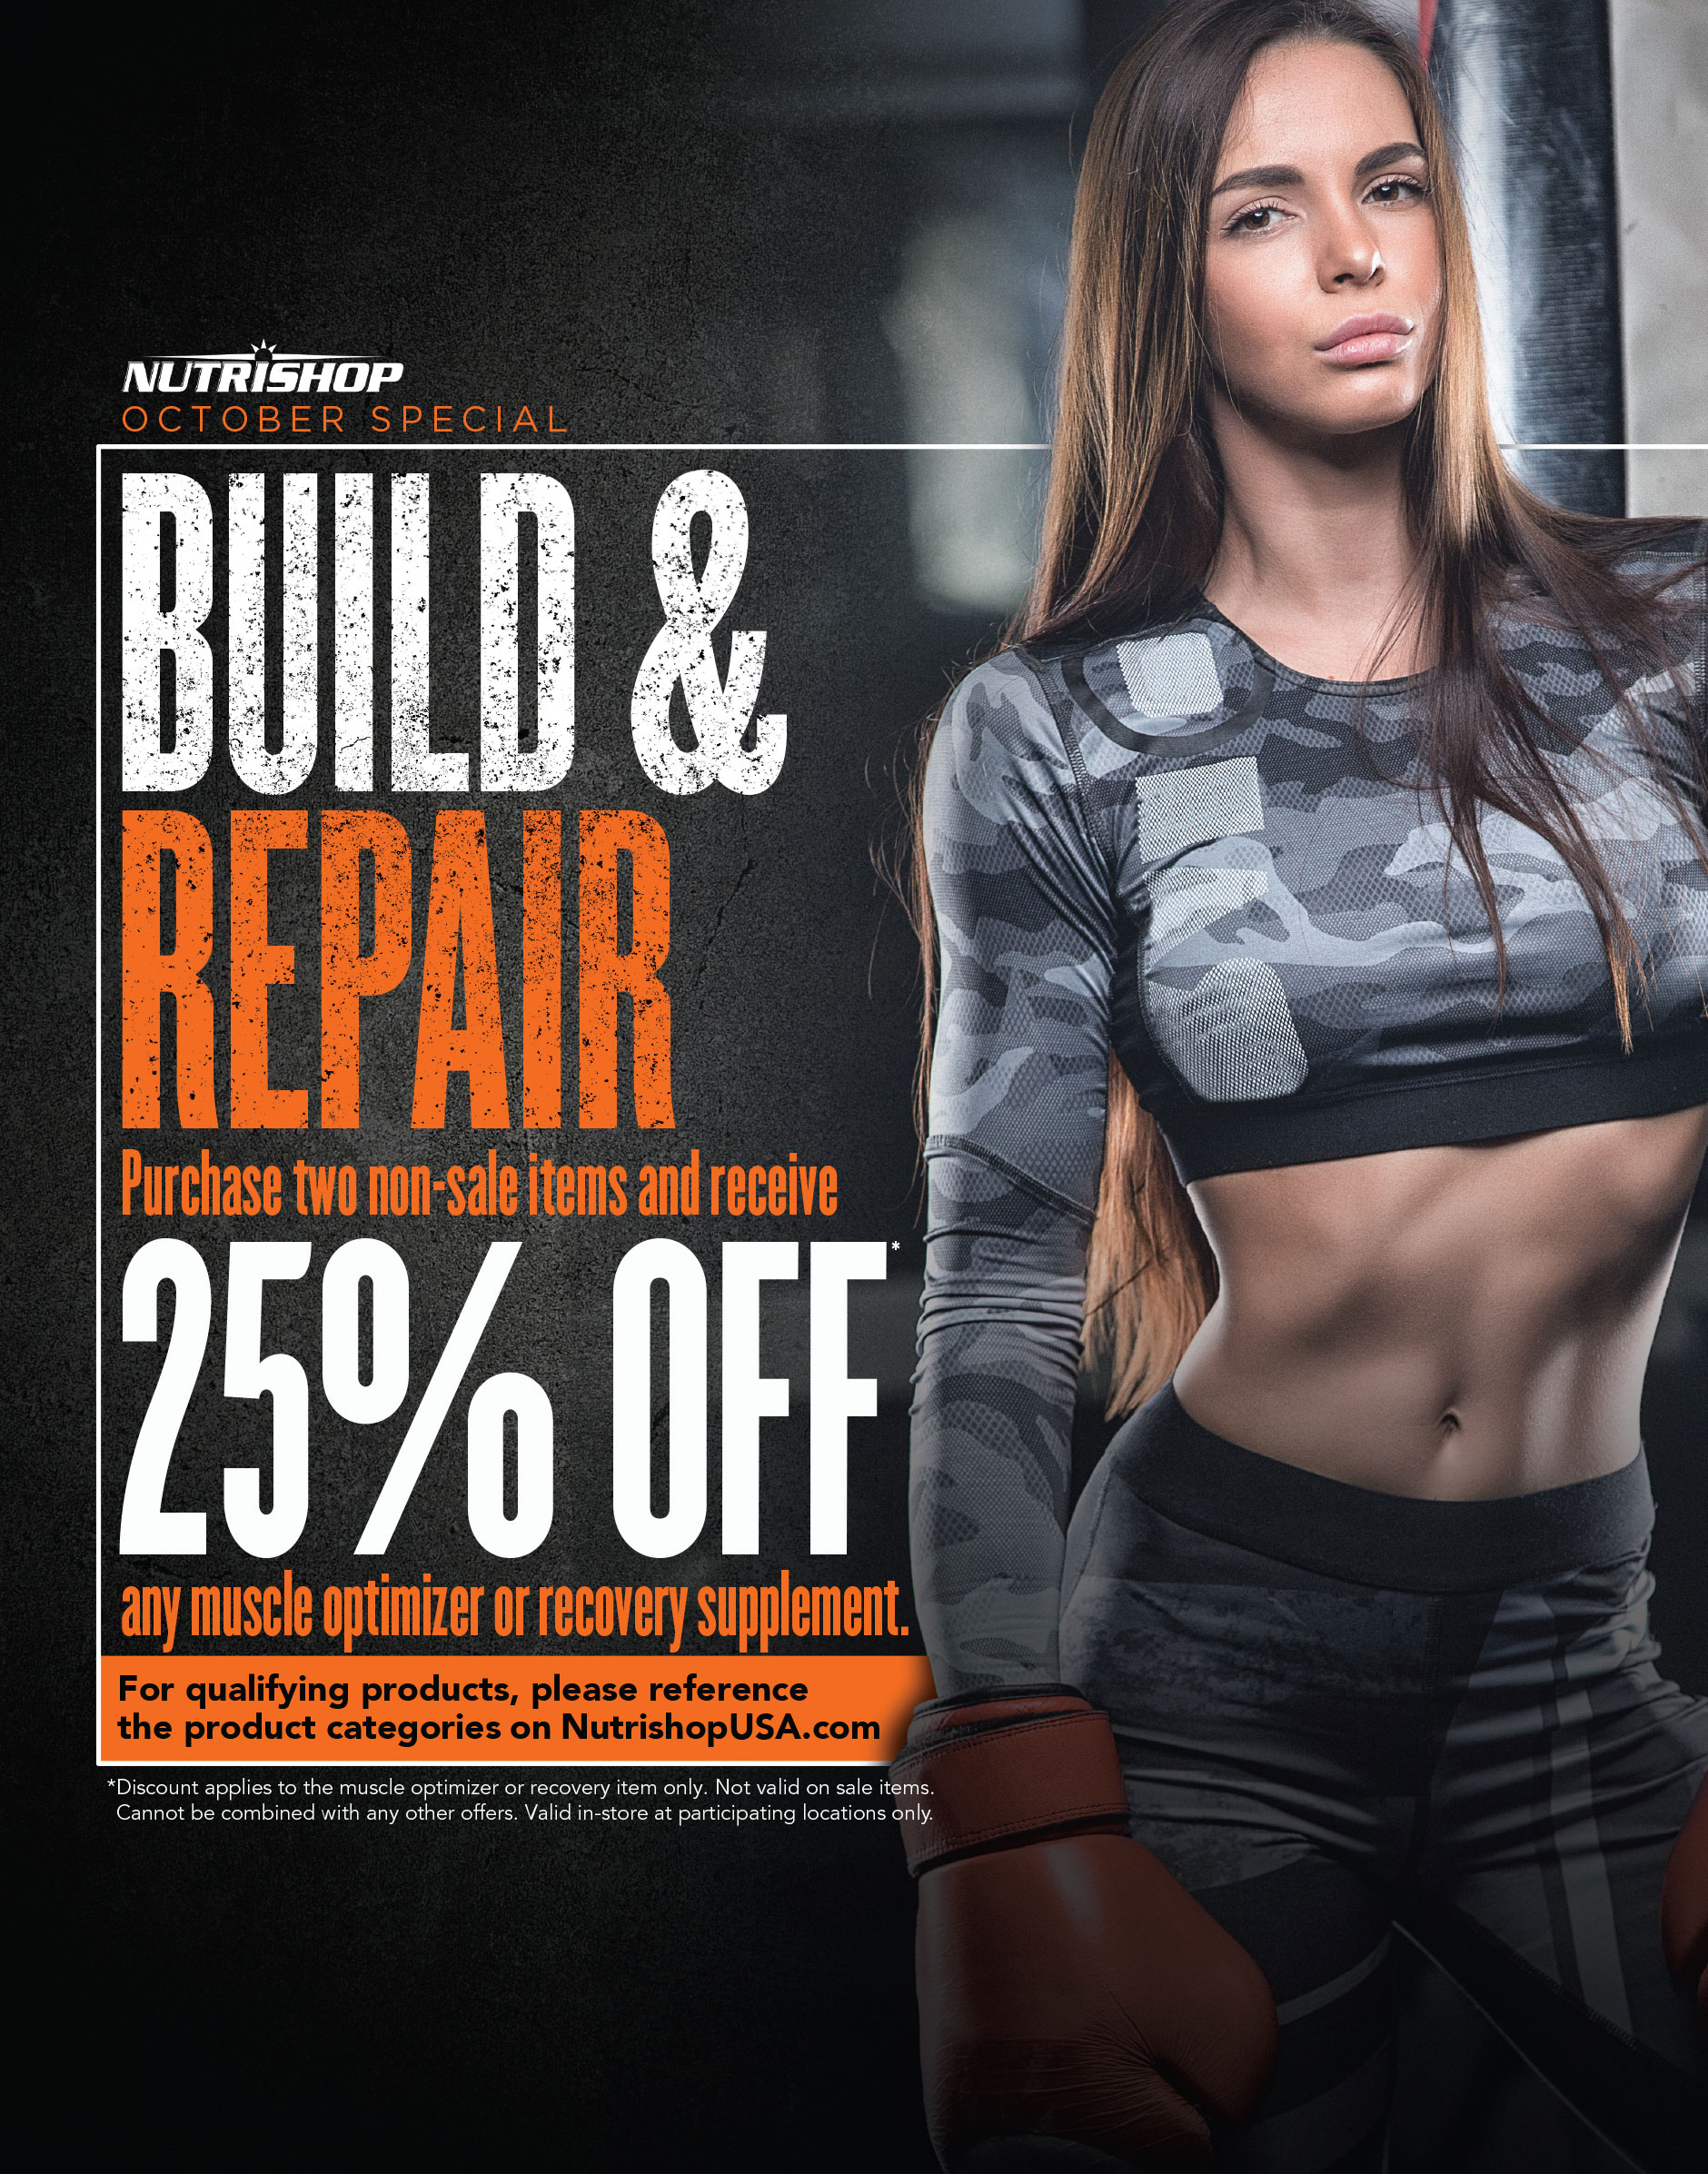 October Special Build & Repair Purchase two non-sale items and receive 25% off any muscle optimizer or recovery supplement. For qualifying products, please reference the product categories on NutrishopUSA.com. Discount applies to the muscle optimizer or recovery item only. Not valid on sale items. Cannot be combined with any other offers. Valid in-store at participating locations only.